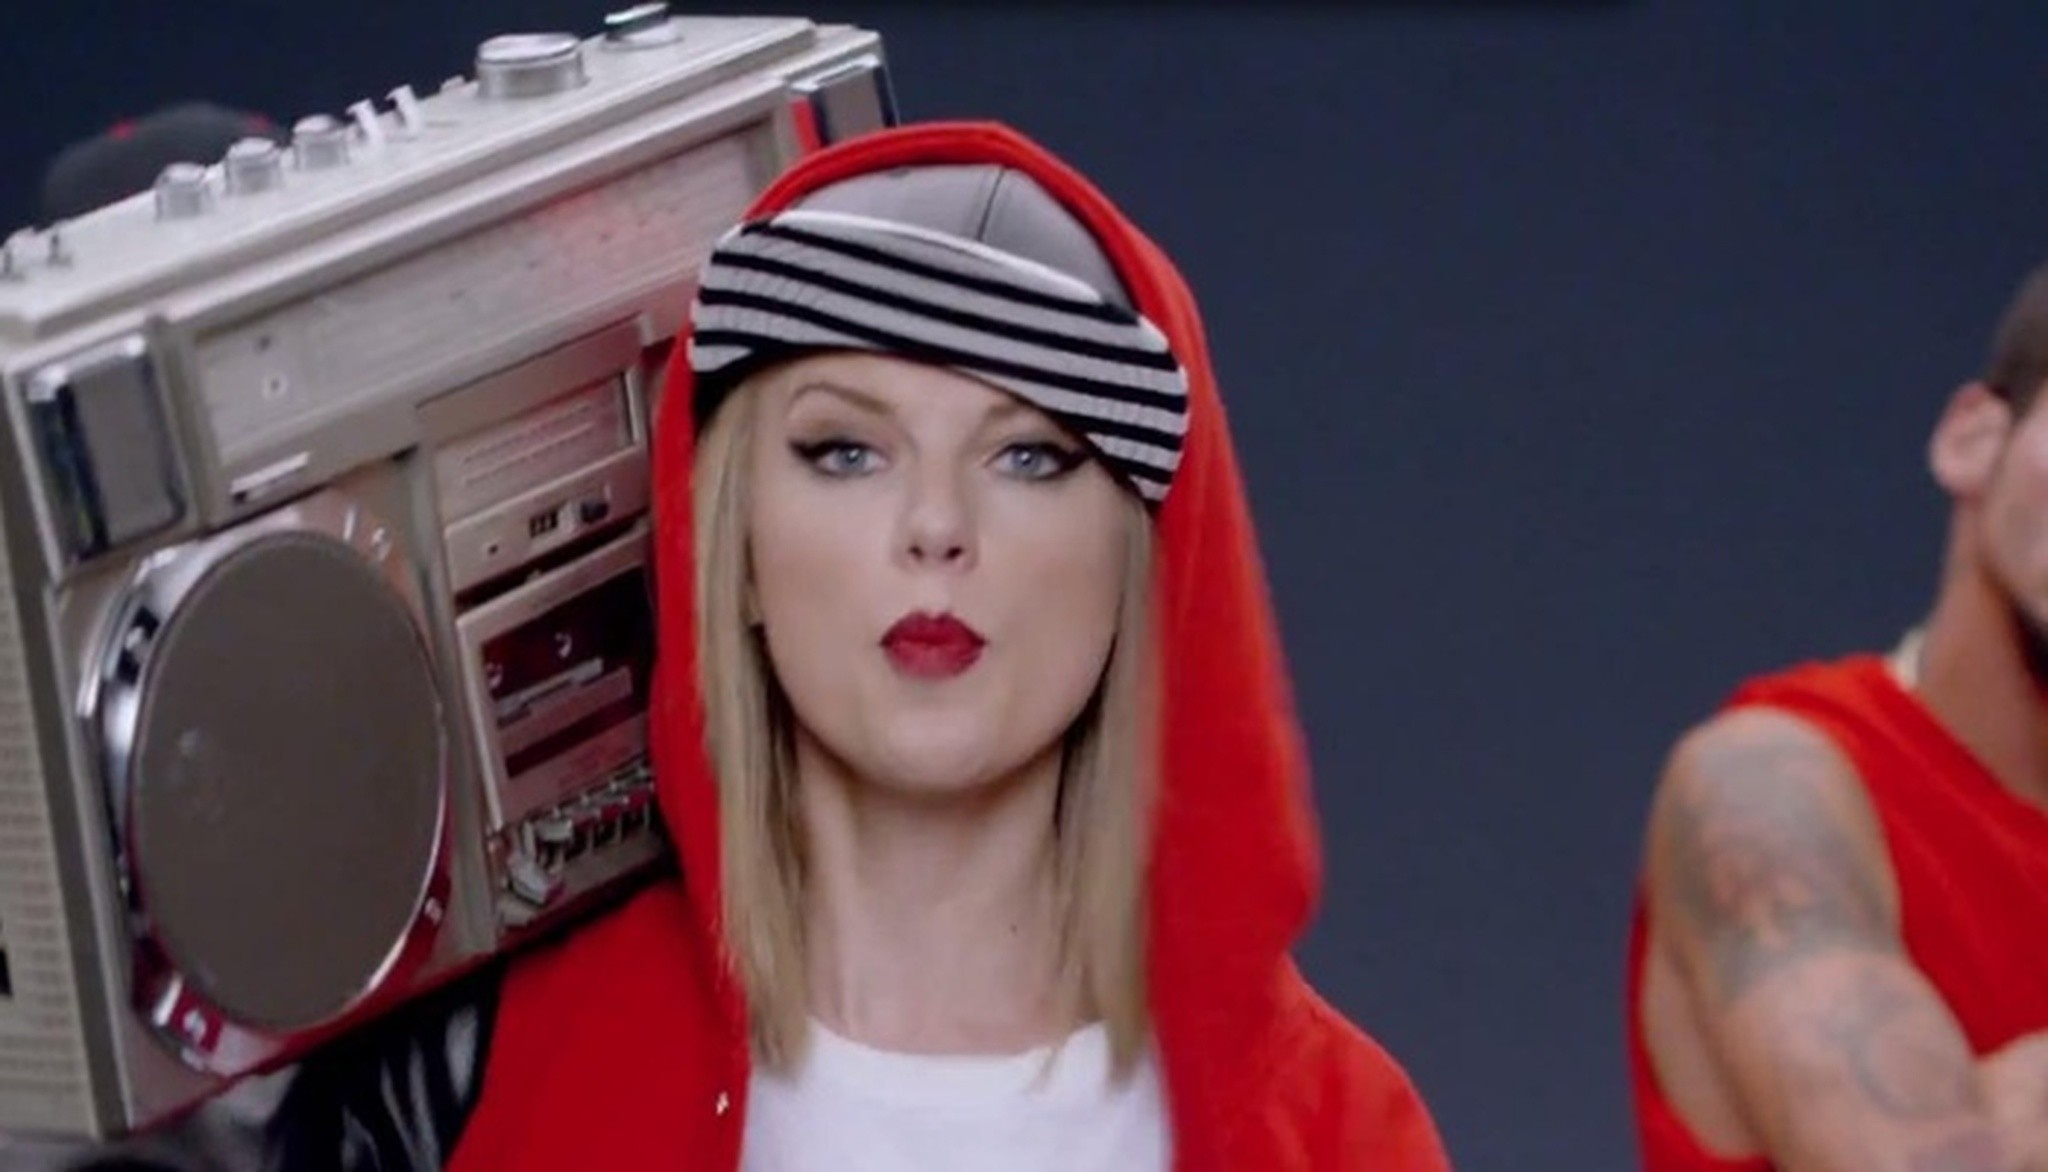 New Taylor Swift video blasted for twerking and cultural appropriation